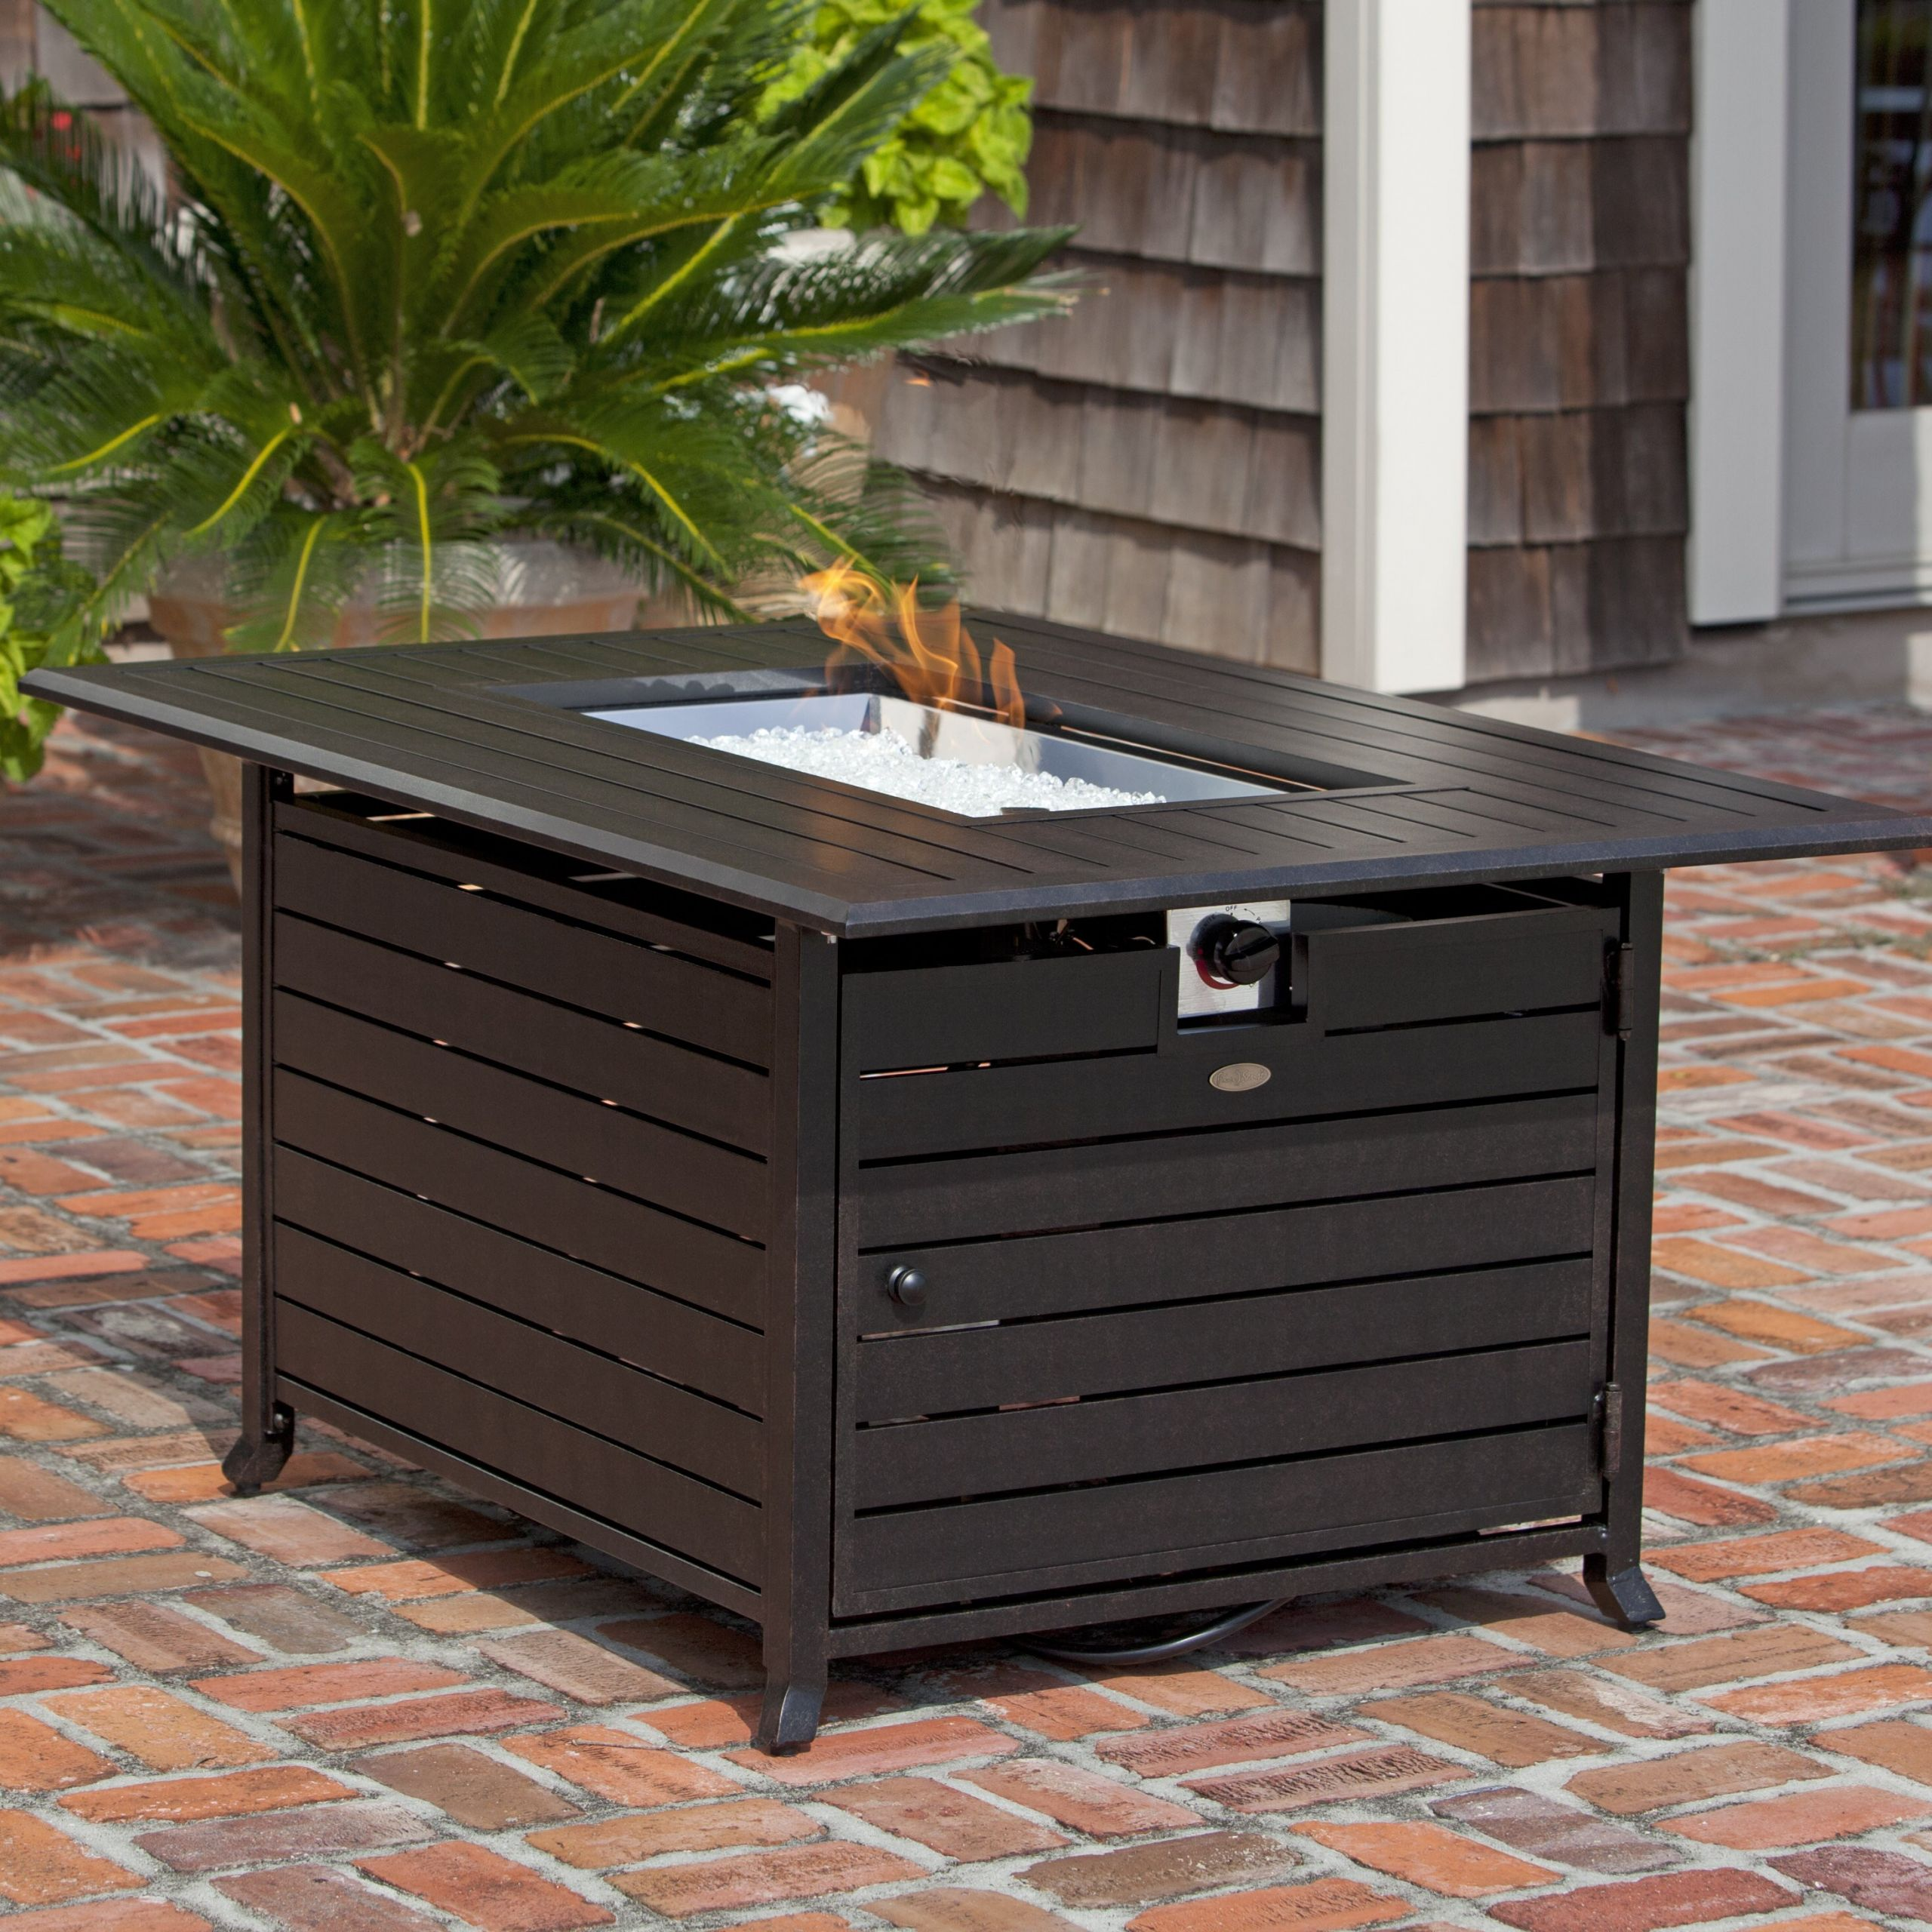 Propane Fire Pit Table Set  Fire Sense Extruded Aluminum Propane Fire Pit Table